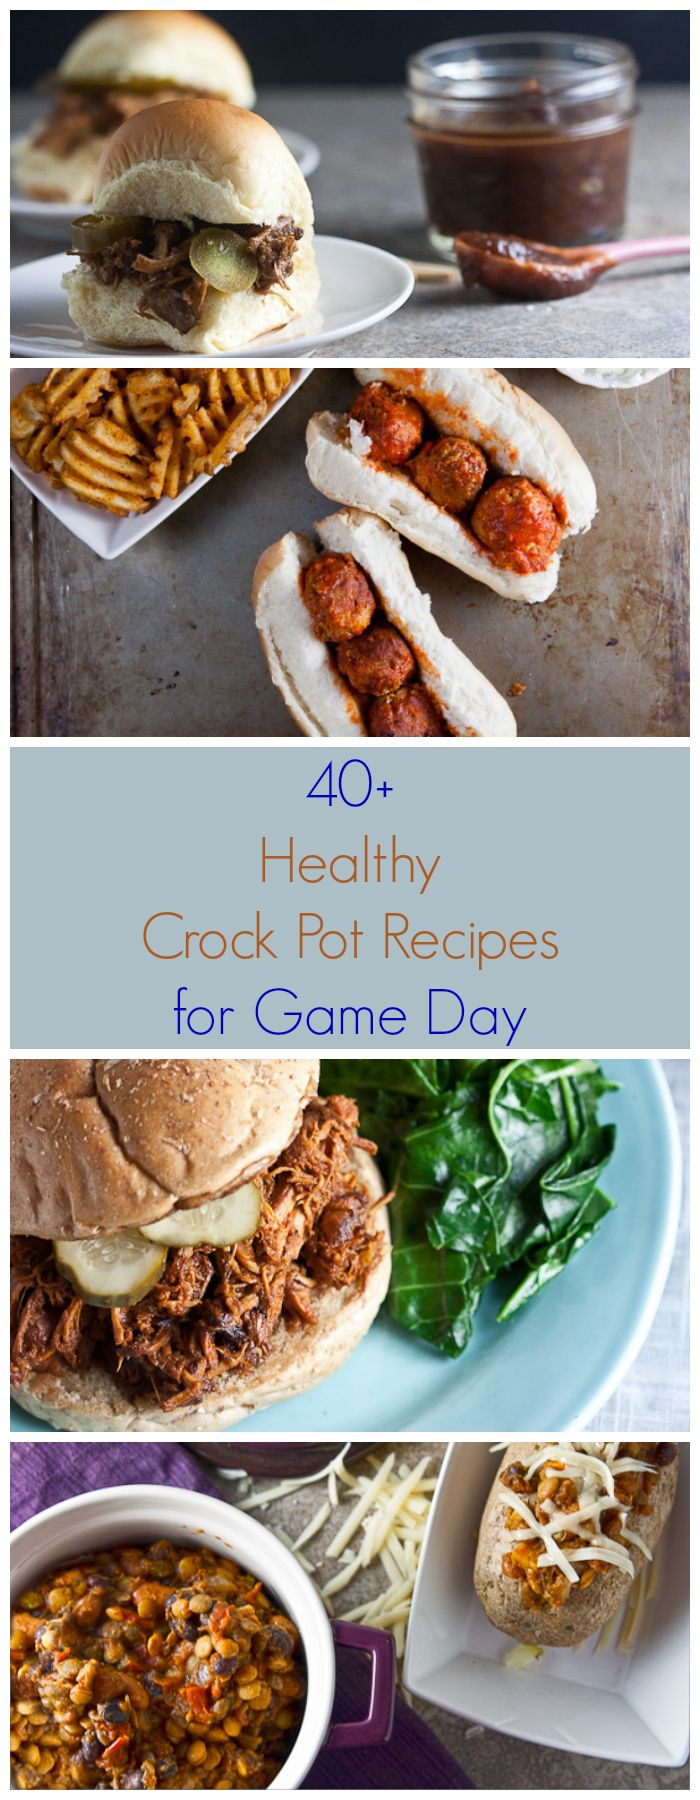 40 Crockpot Recipes for Game Day | Healthy & Delicious Chicken: https://www.zayconfoods.com/campaign/14